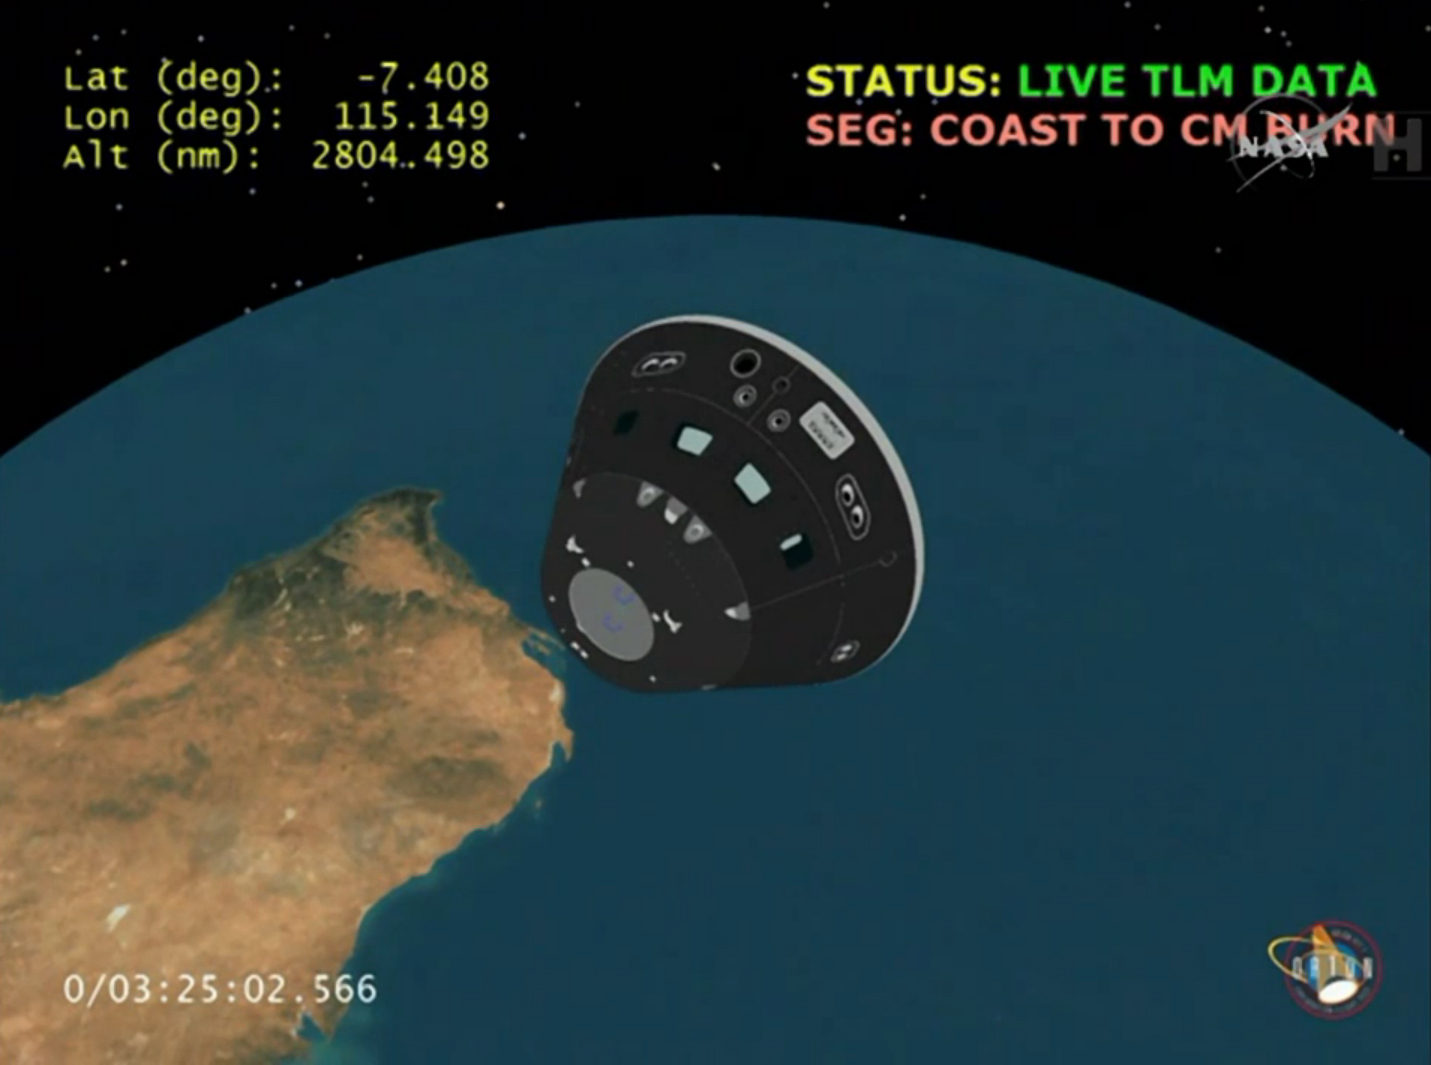 Orions crew module flying freely for the first time during its maiden voyage